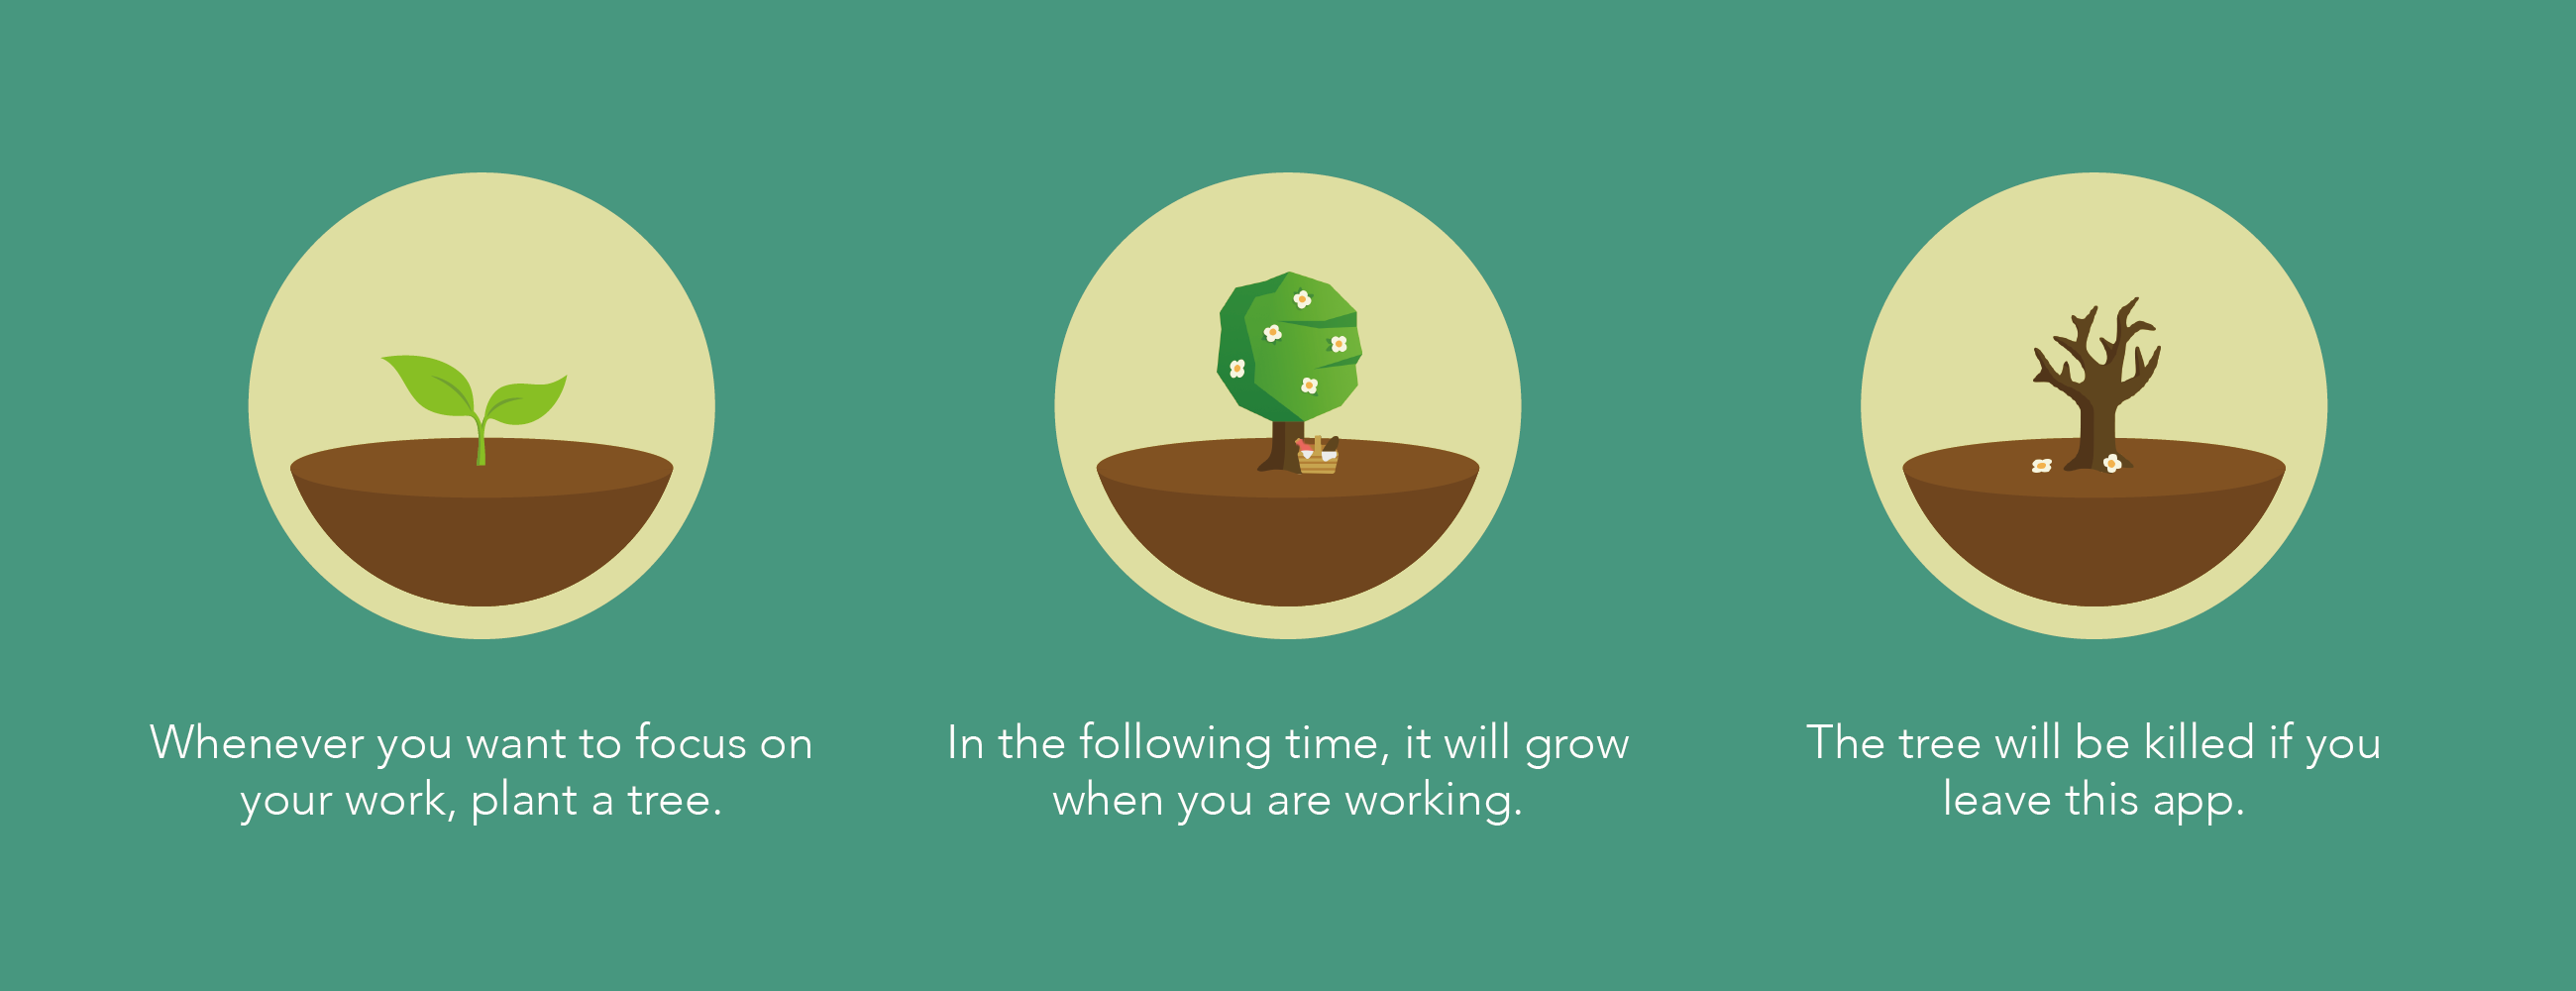 3 images of a small plant, a fully grown tree, and a dying tree.